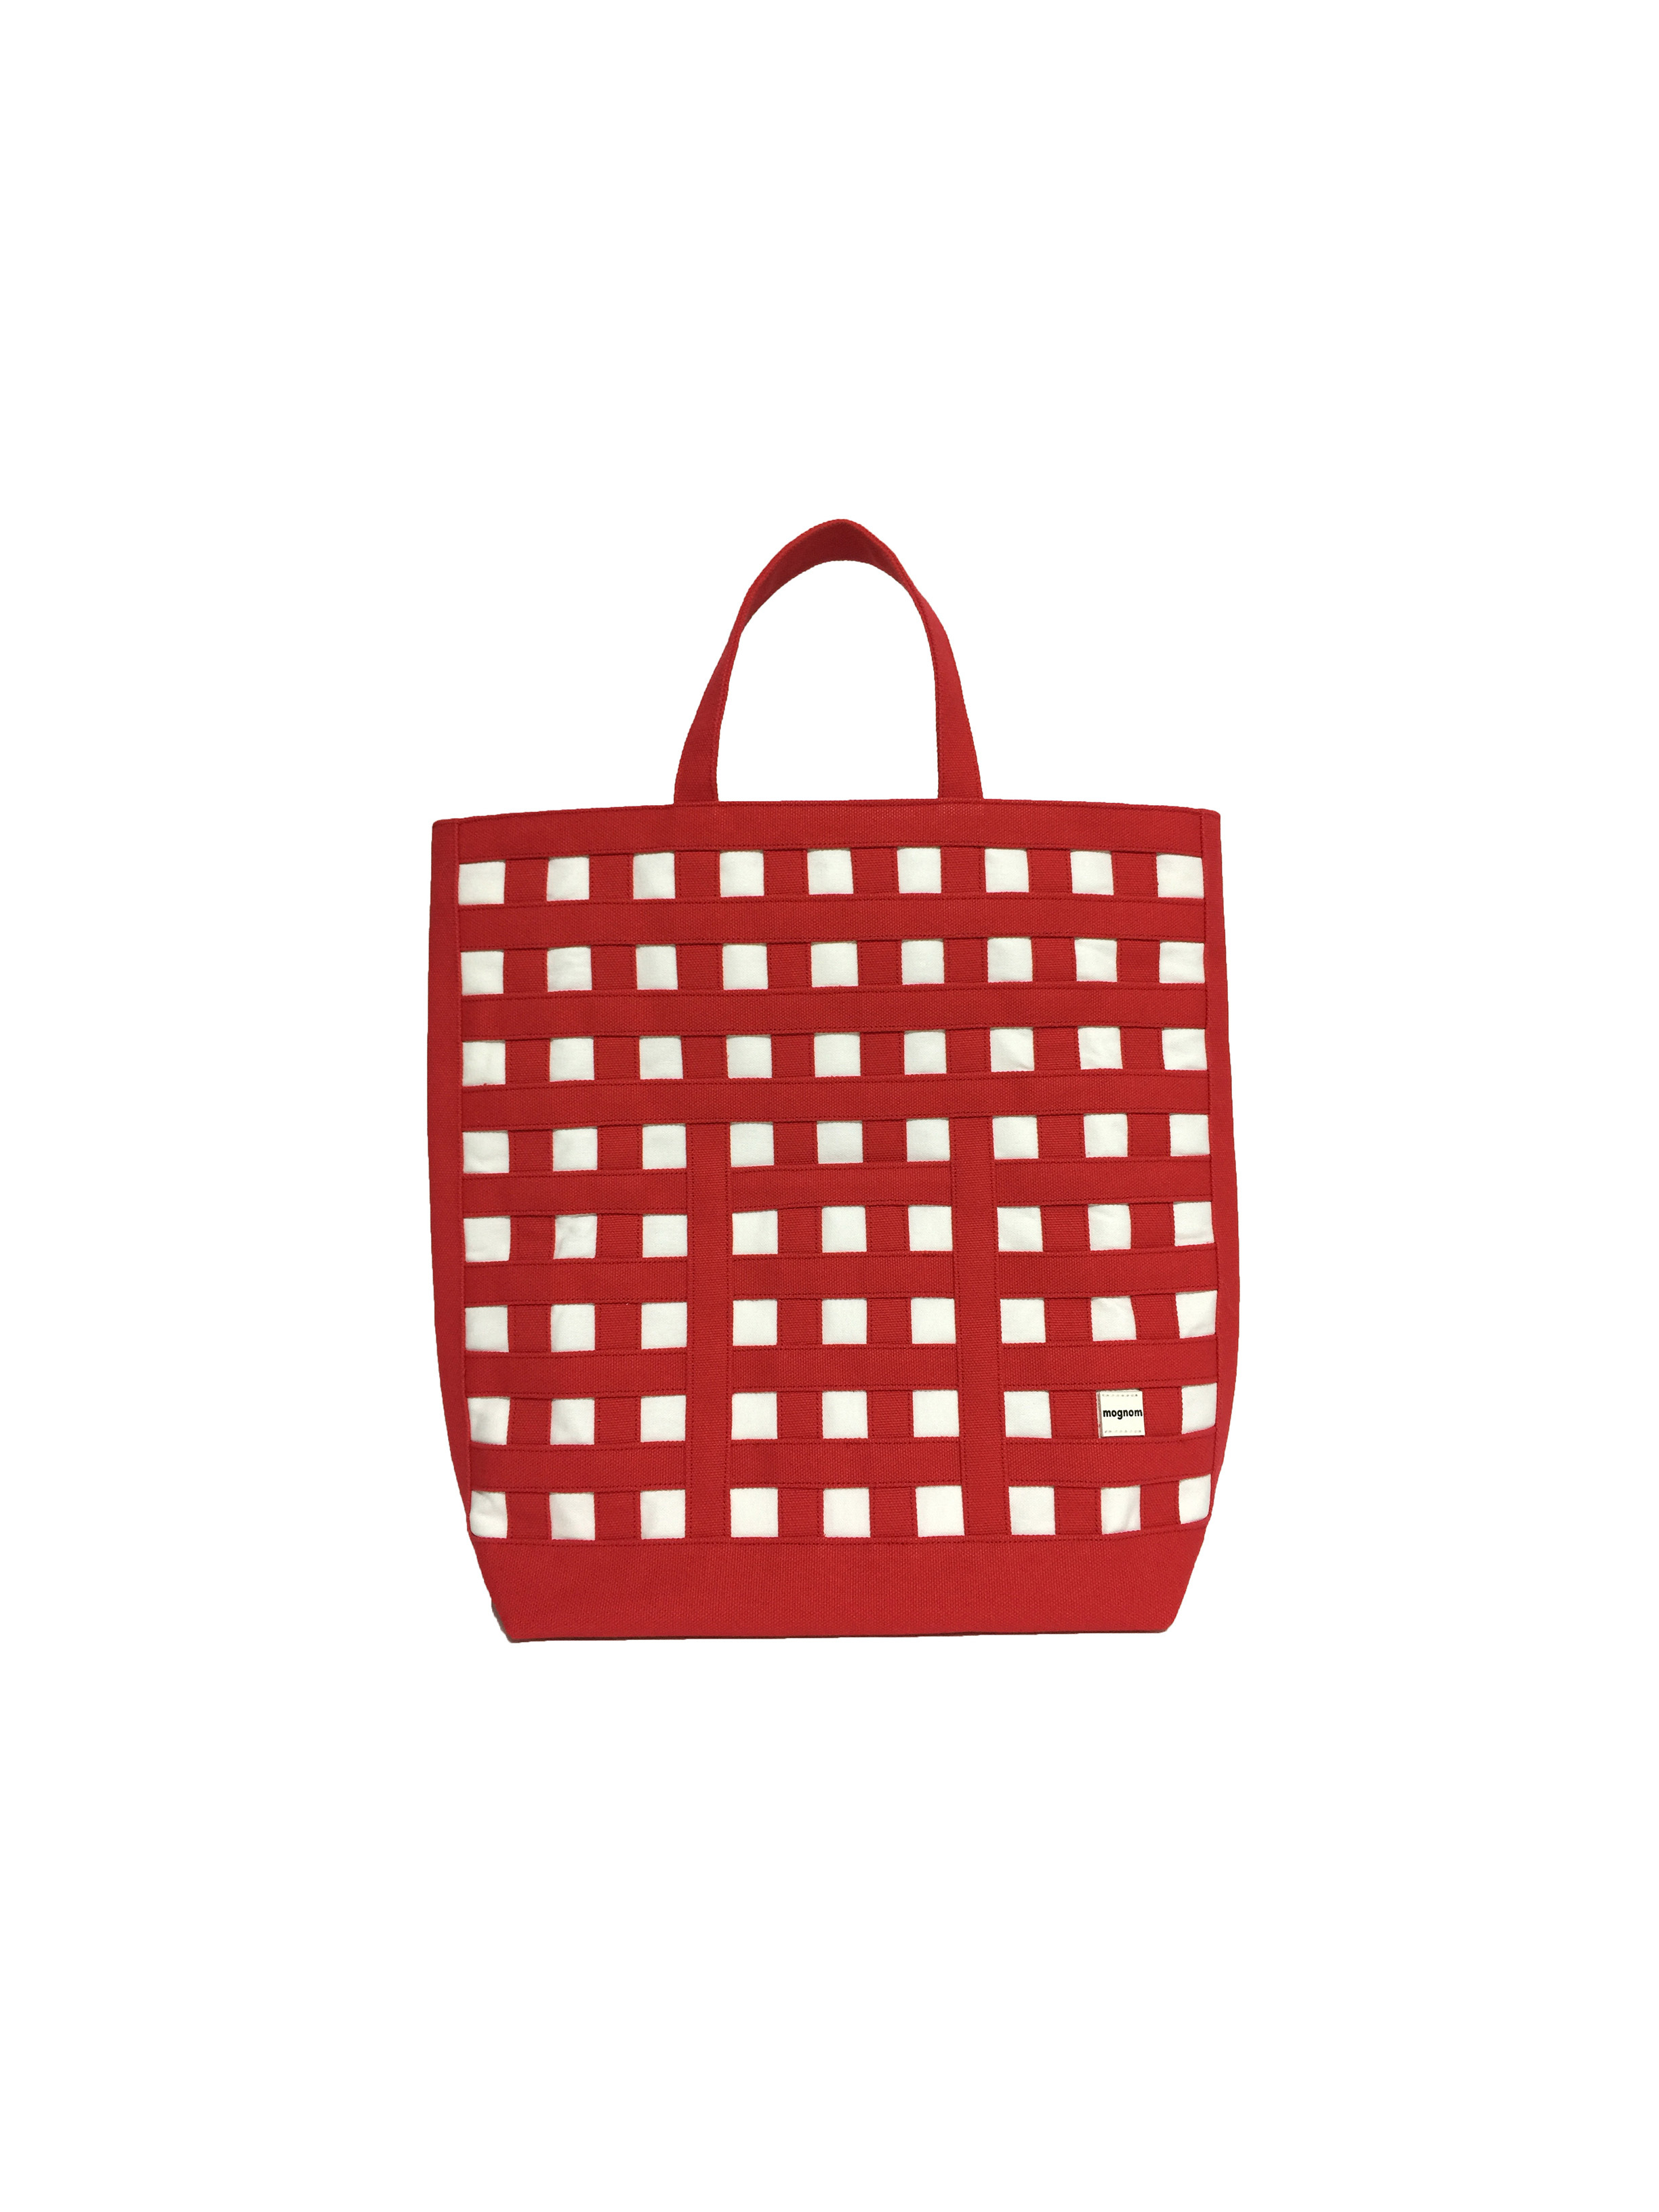 gingham tote ギンガムトート 20 レッド